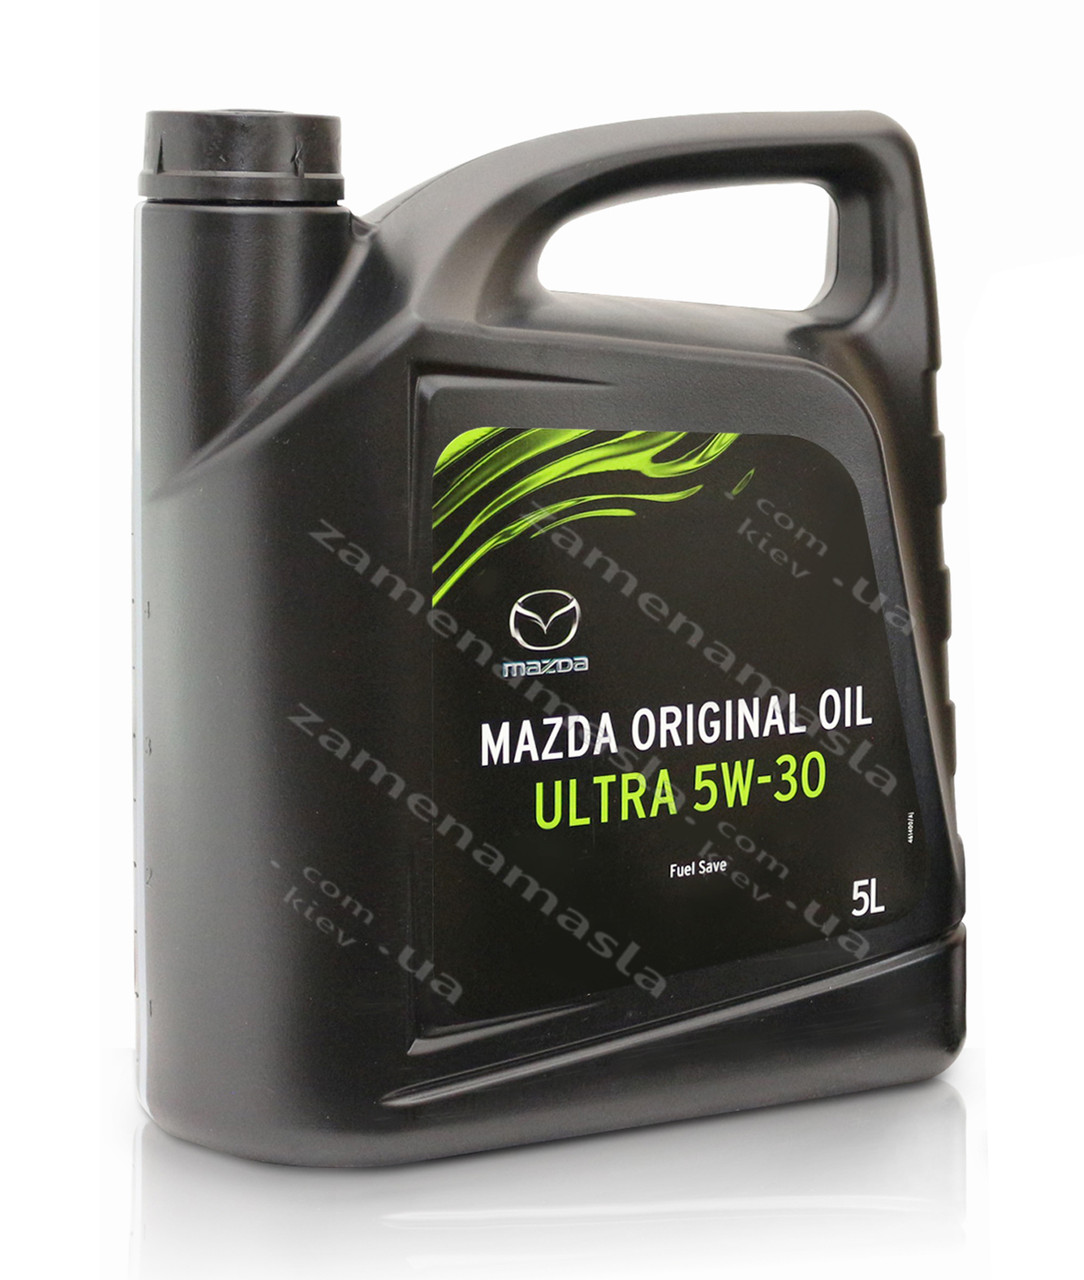 MAZDA ORIGINAL OIL ULTRA 5w-30 5л - моторное масло